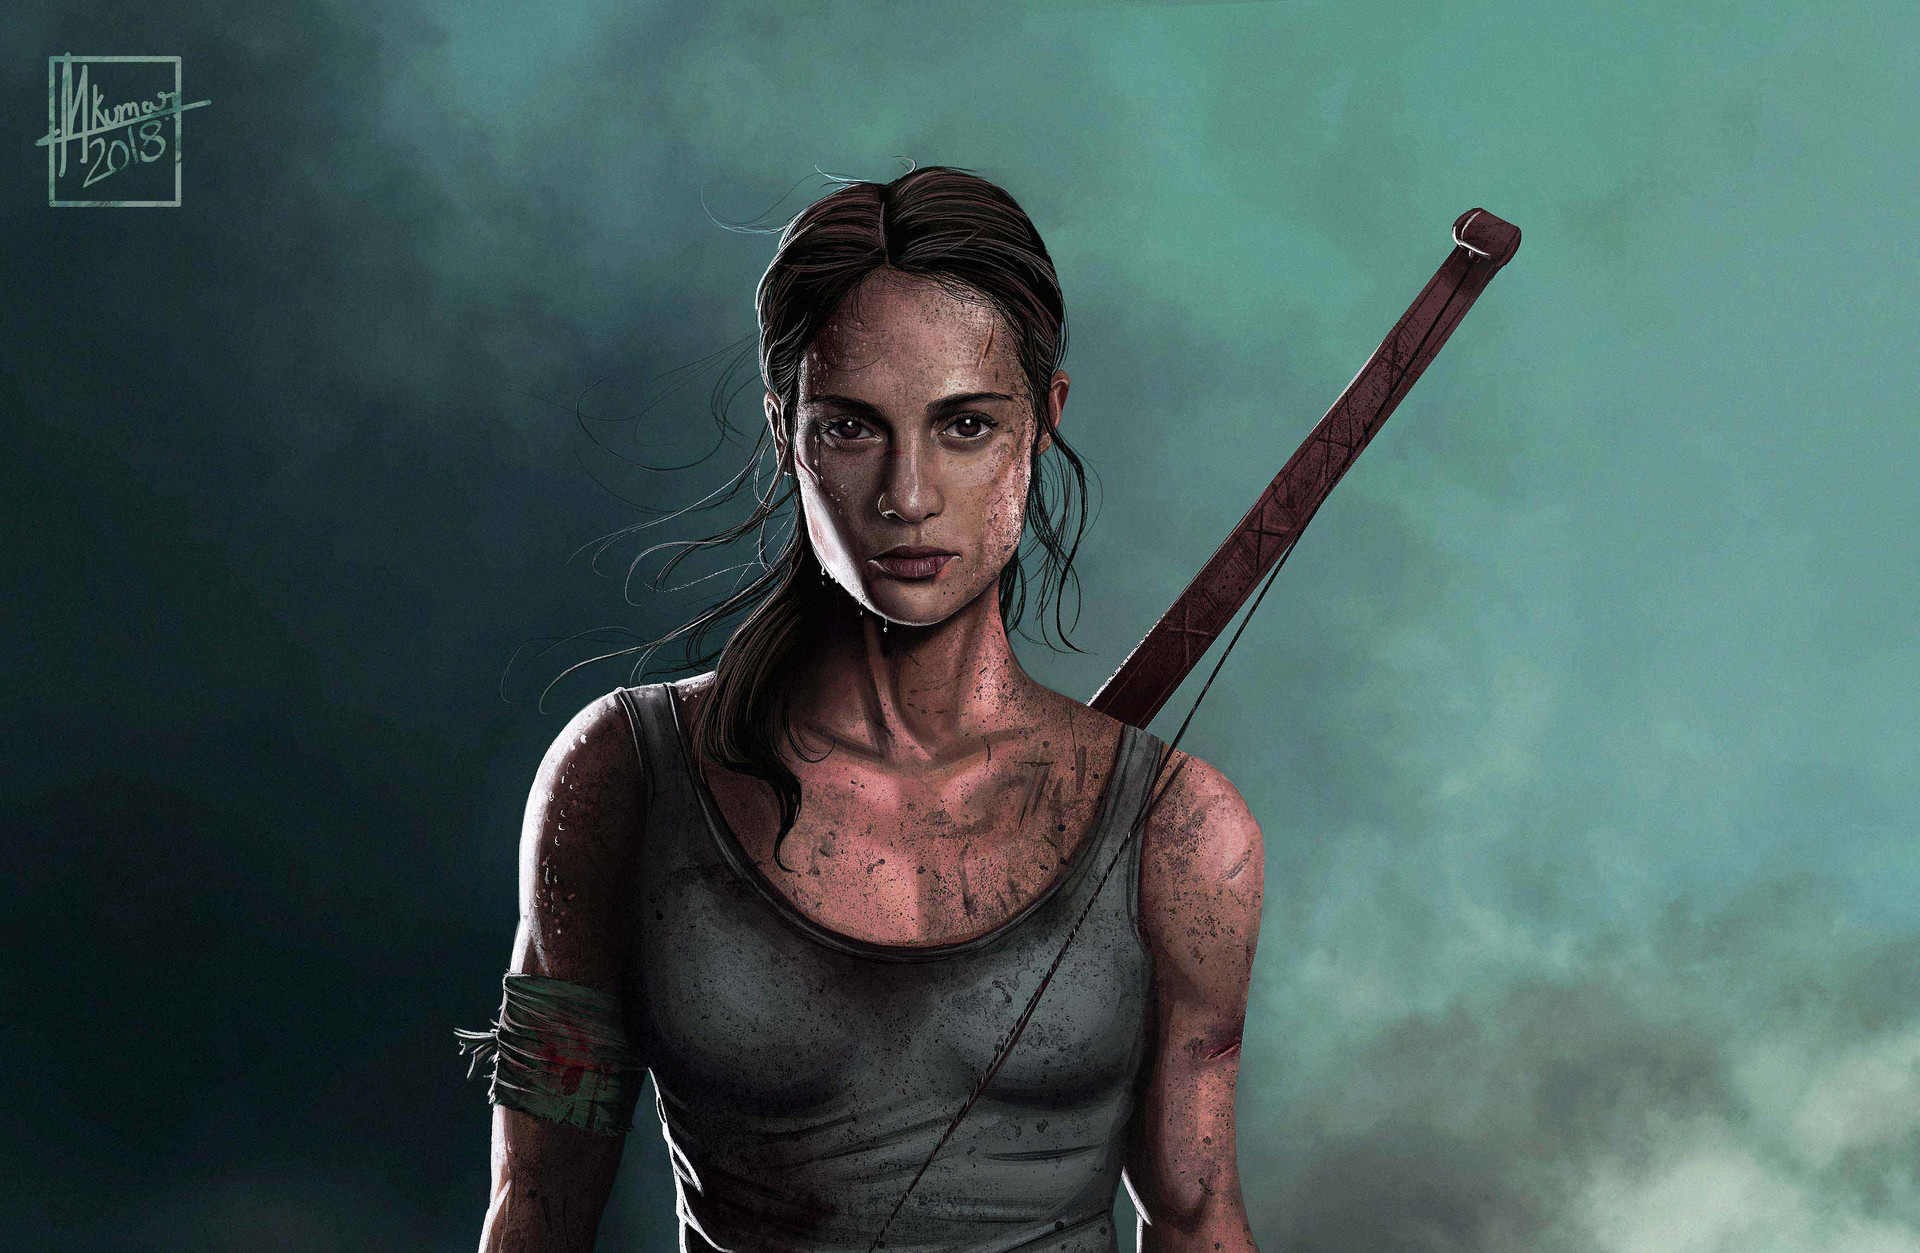 1280x720 Tomb Raider Alicia Vikander Artwork 720p Hd 4k Wallpapers